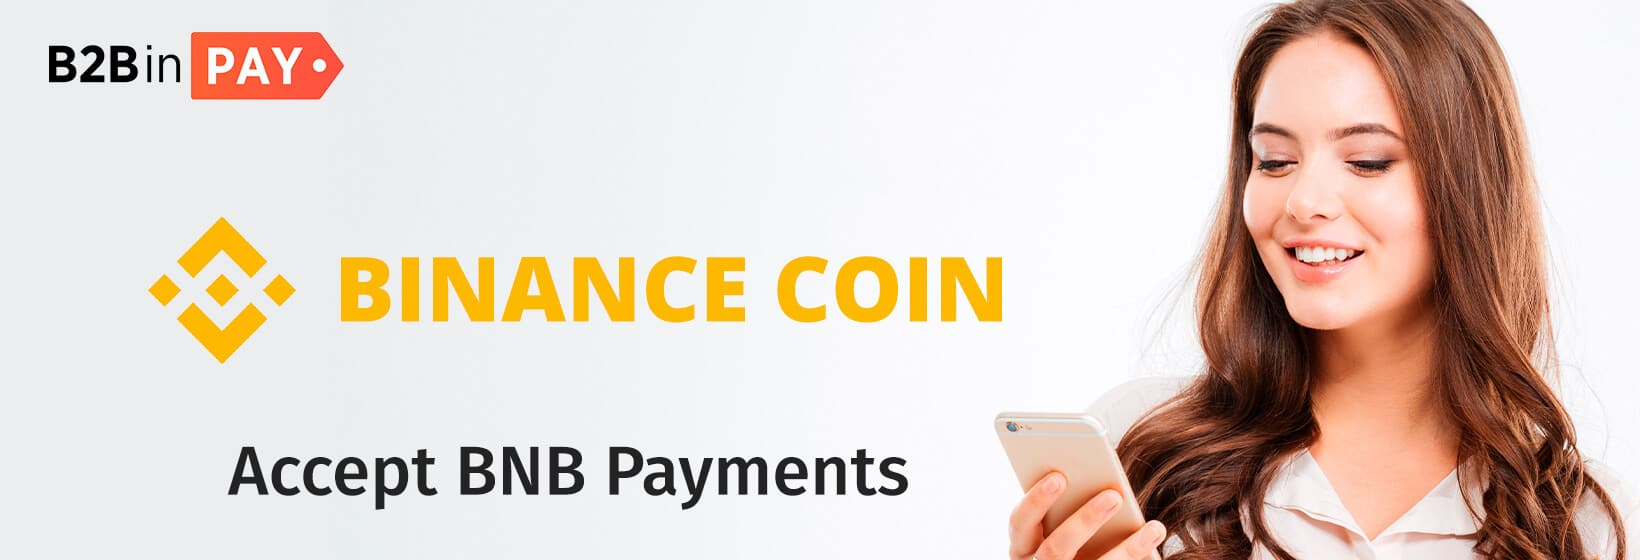 Accept Binance Coin Payments